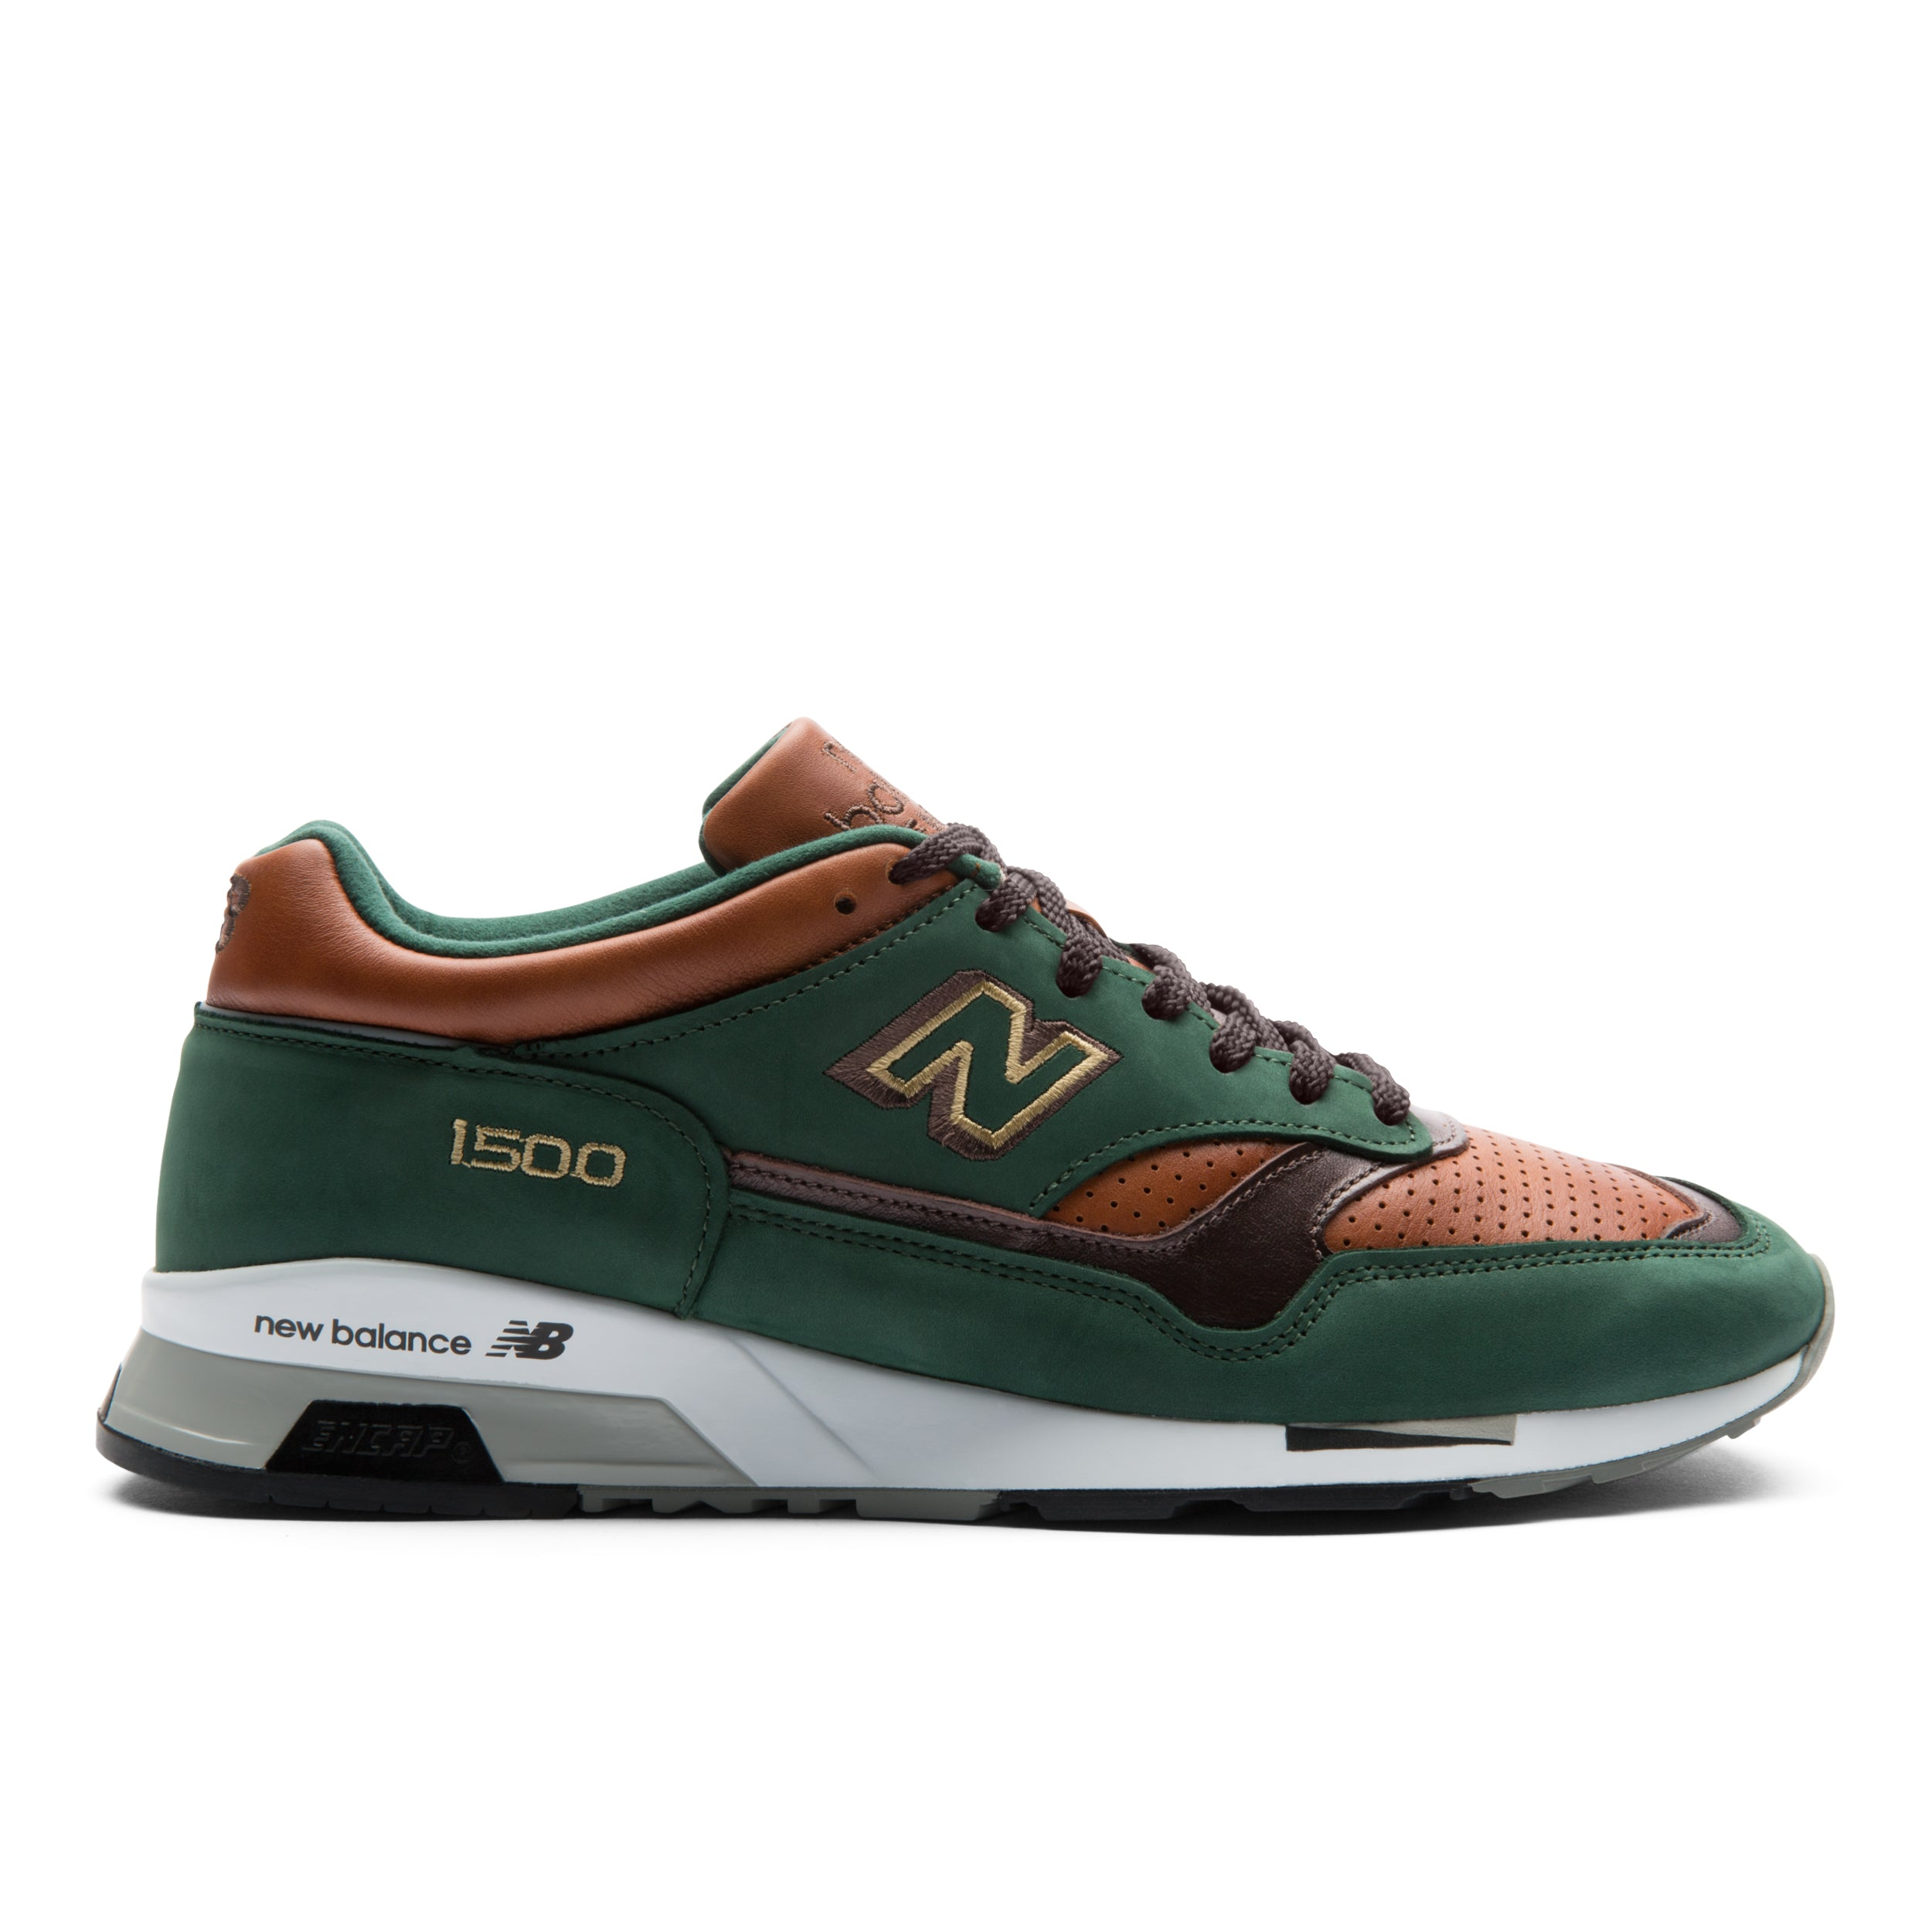 new product 43015 b97ff NEW BALANCE 1500 MADE IN UK - Green   Caramel